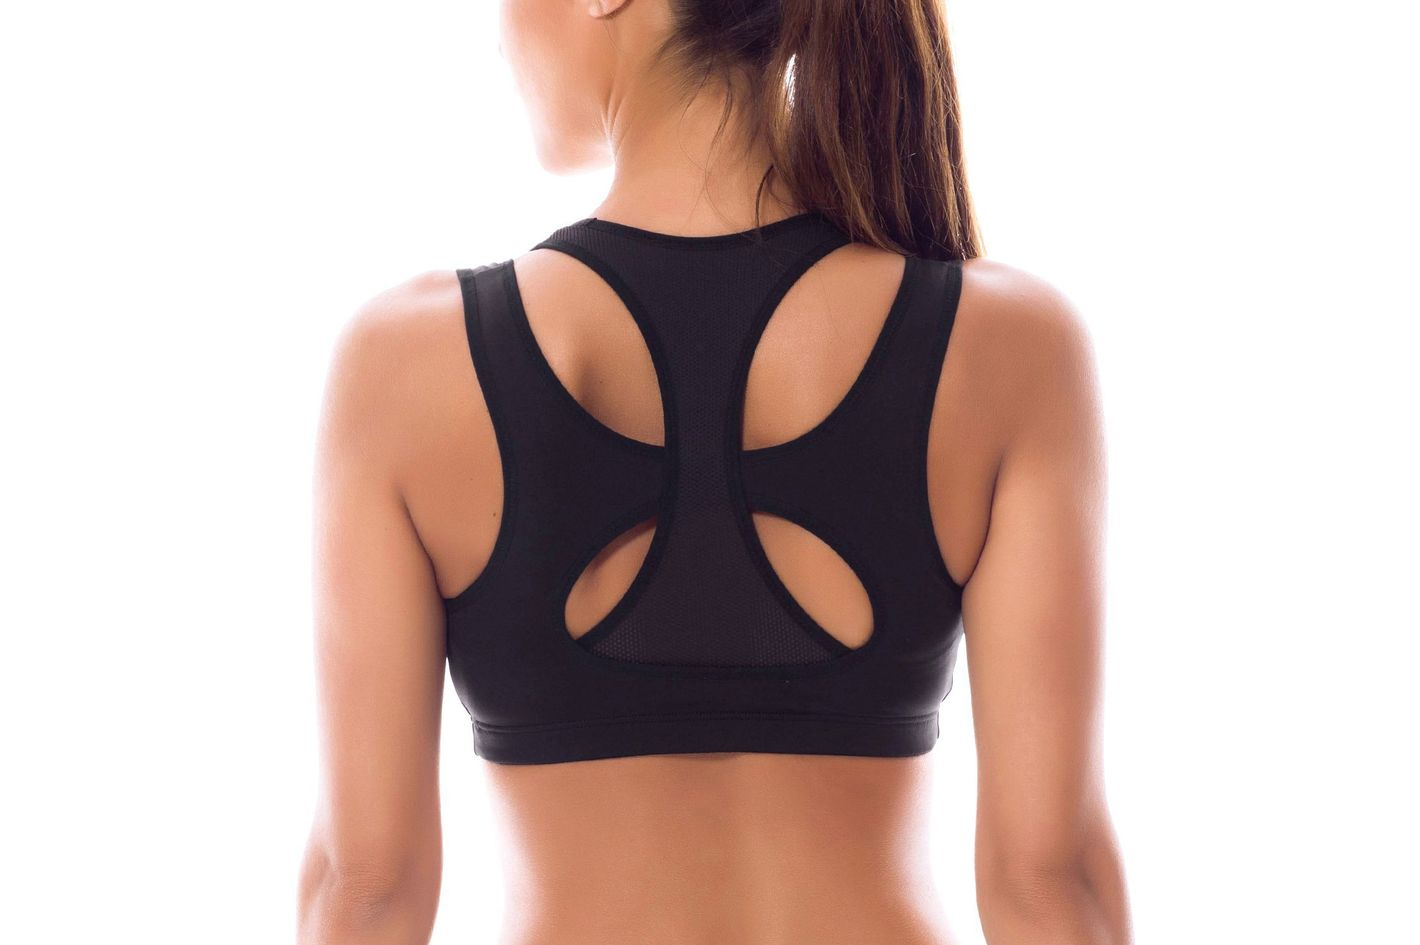 acc9065bdafe76 SYROKAN Women s High Impact Support Wirefree Workout Racerback Sports Bra  Top